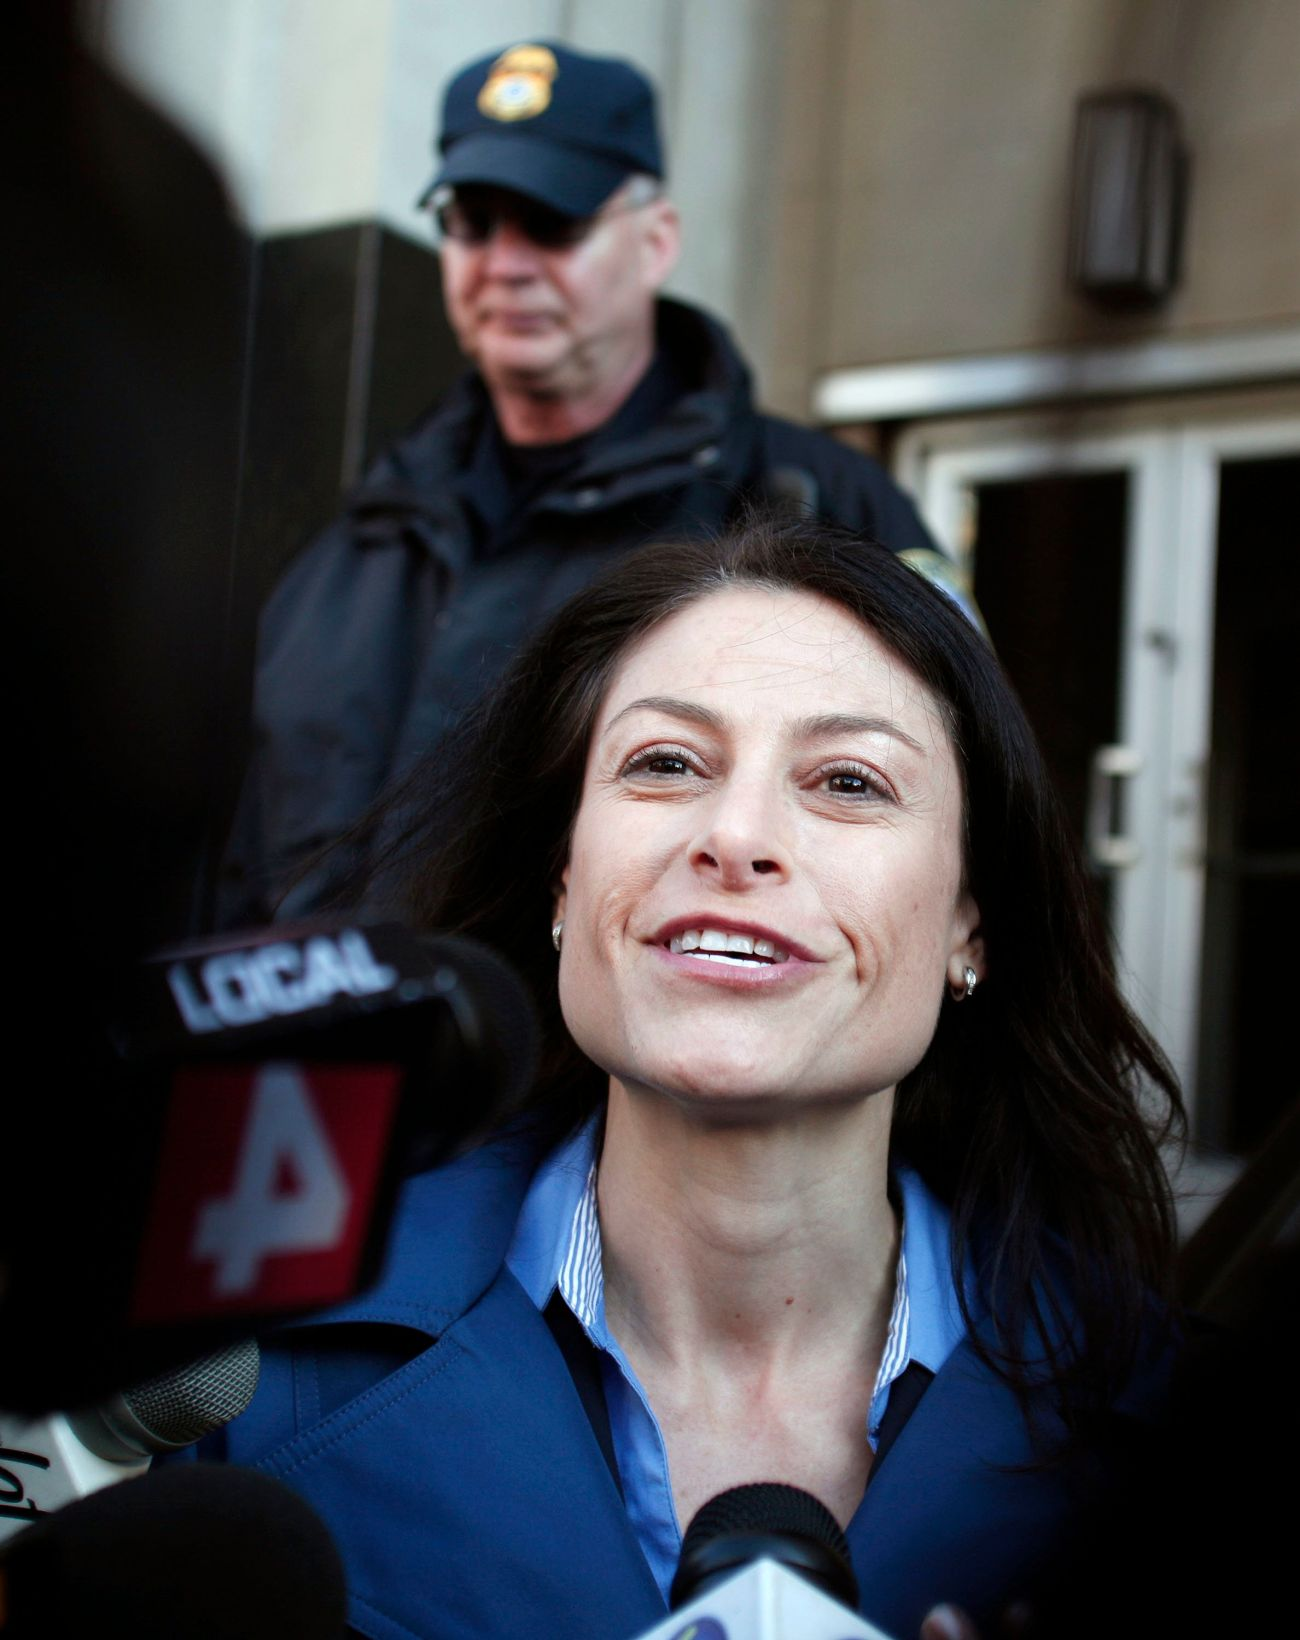 Dana Nessel was elected to be Michigan's next attorney general.